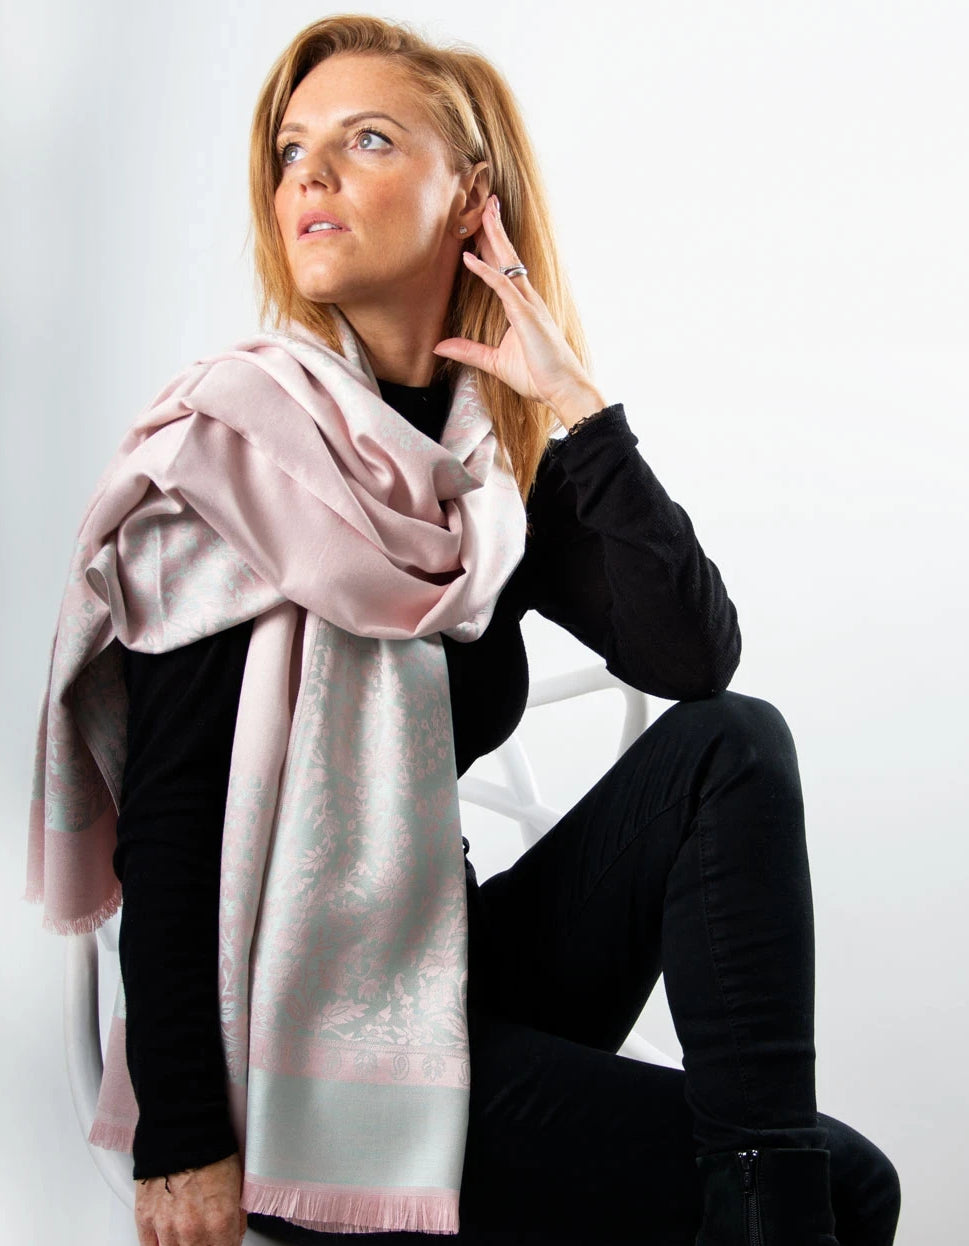 an image showing a Grey and Pink Floral Patterned Pashmina